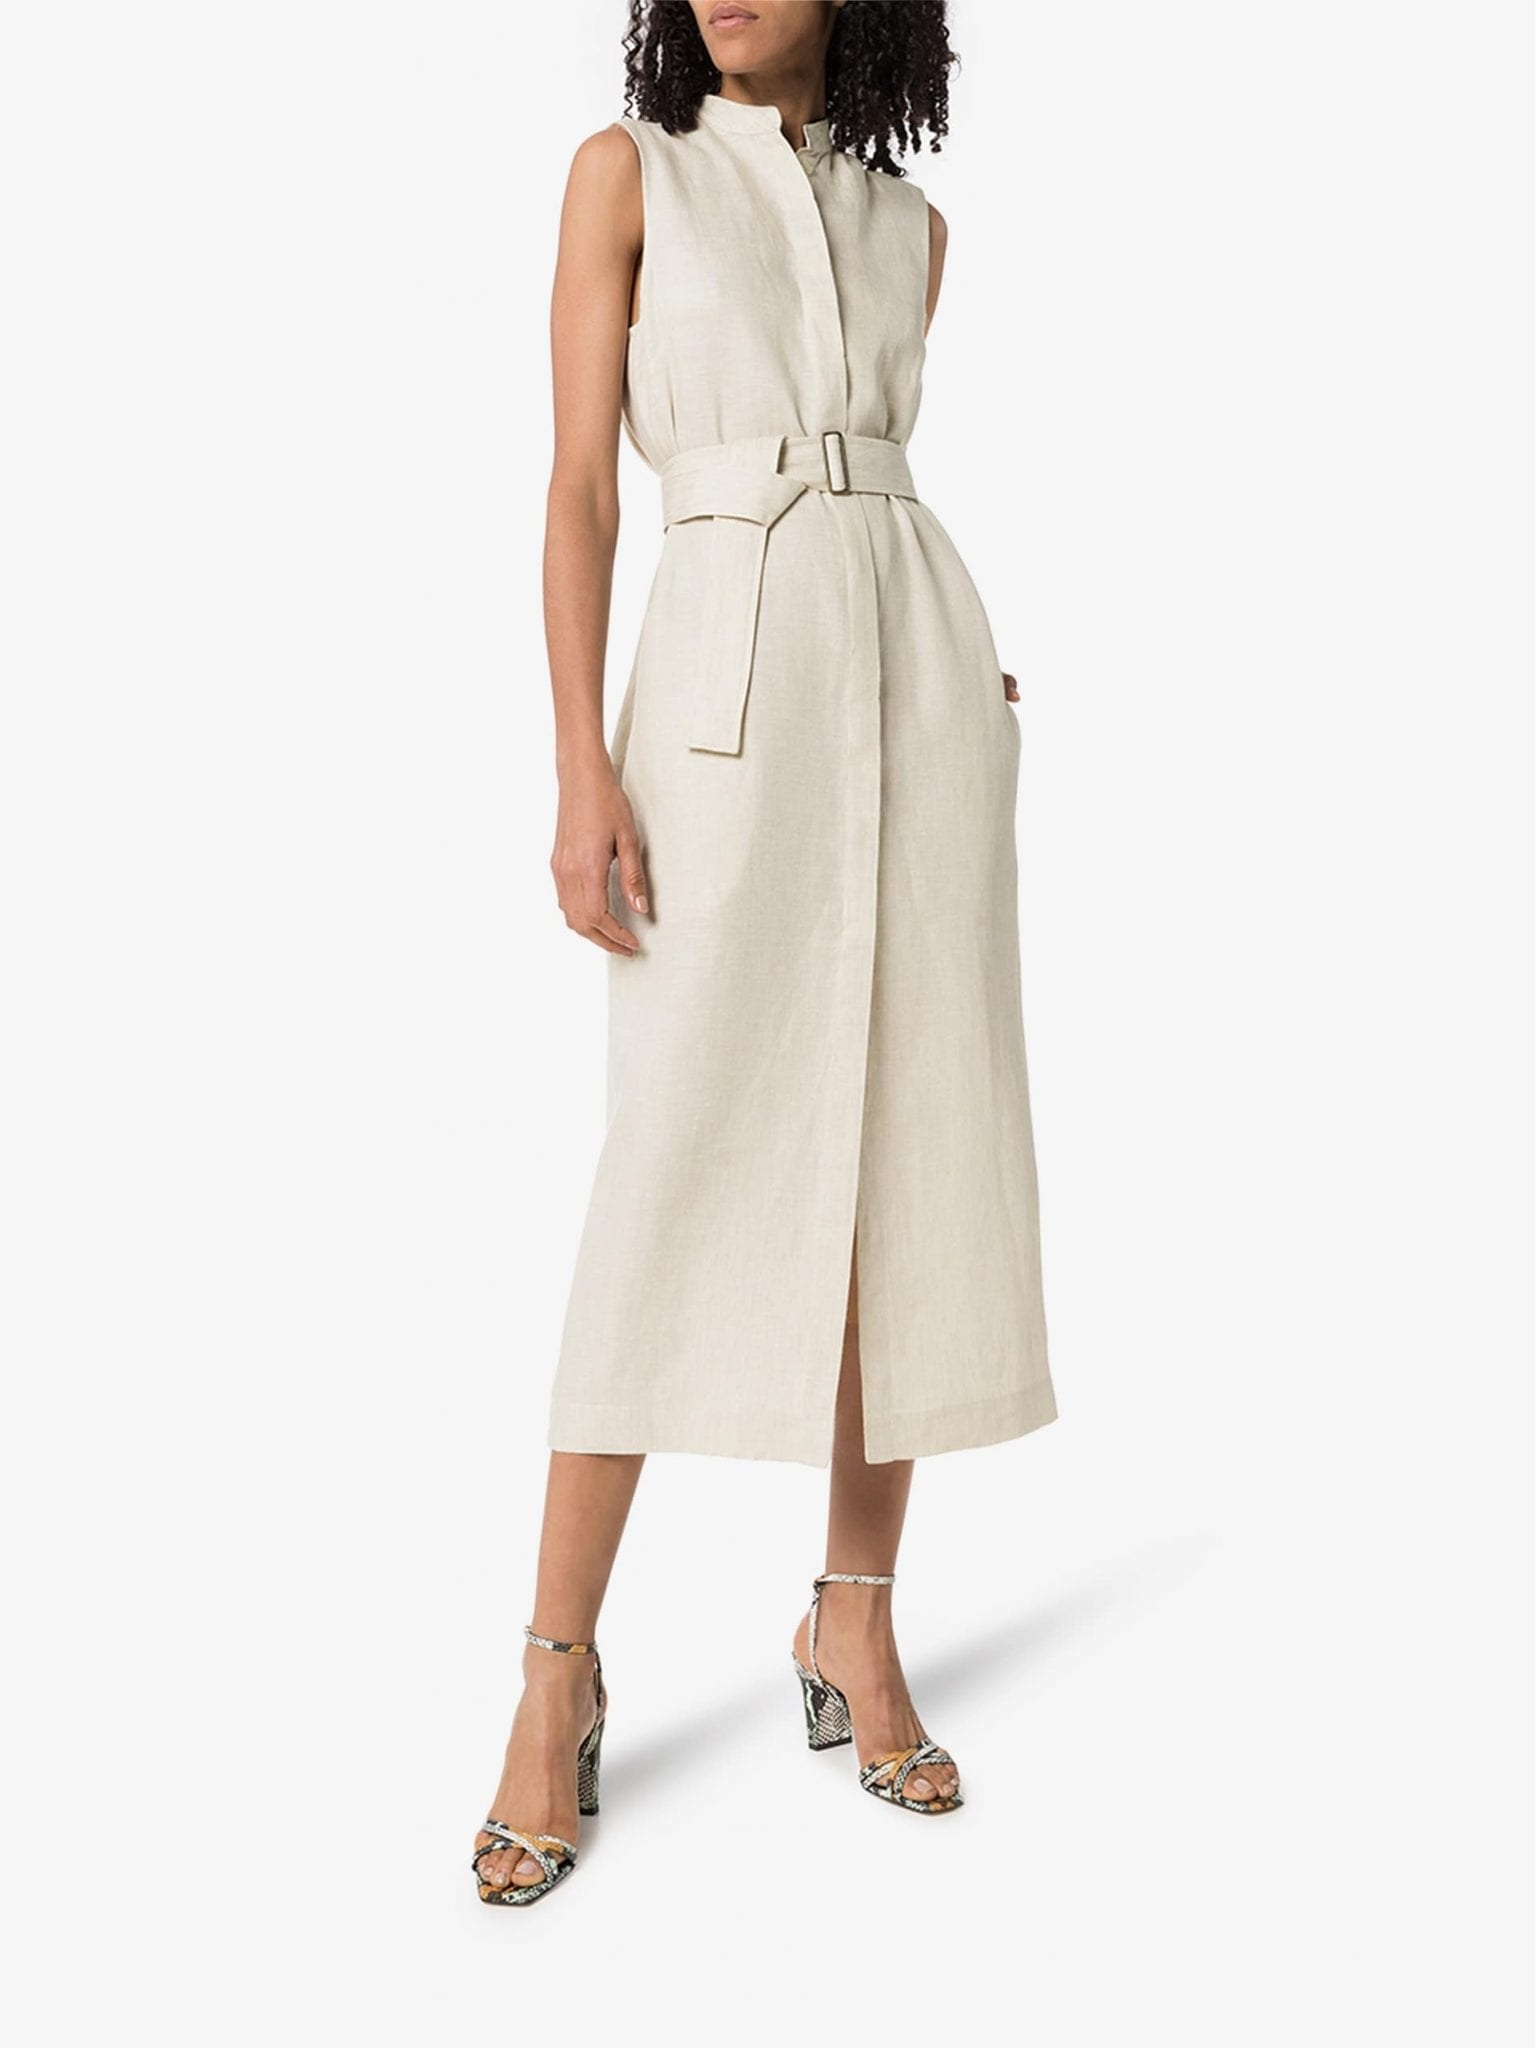 BONDI BORN Utility Belted Linen Midi Dress